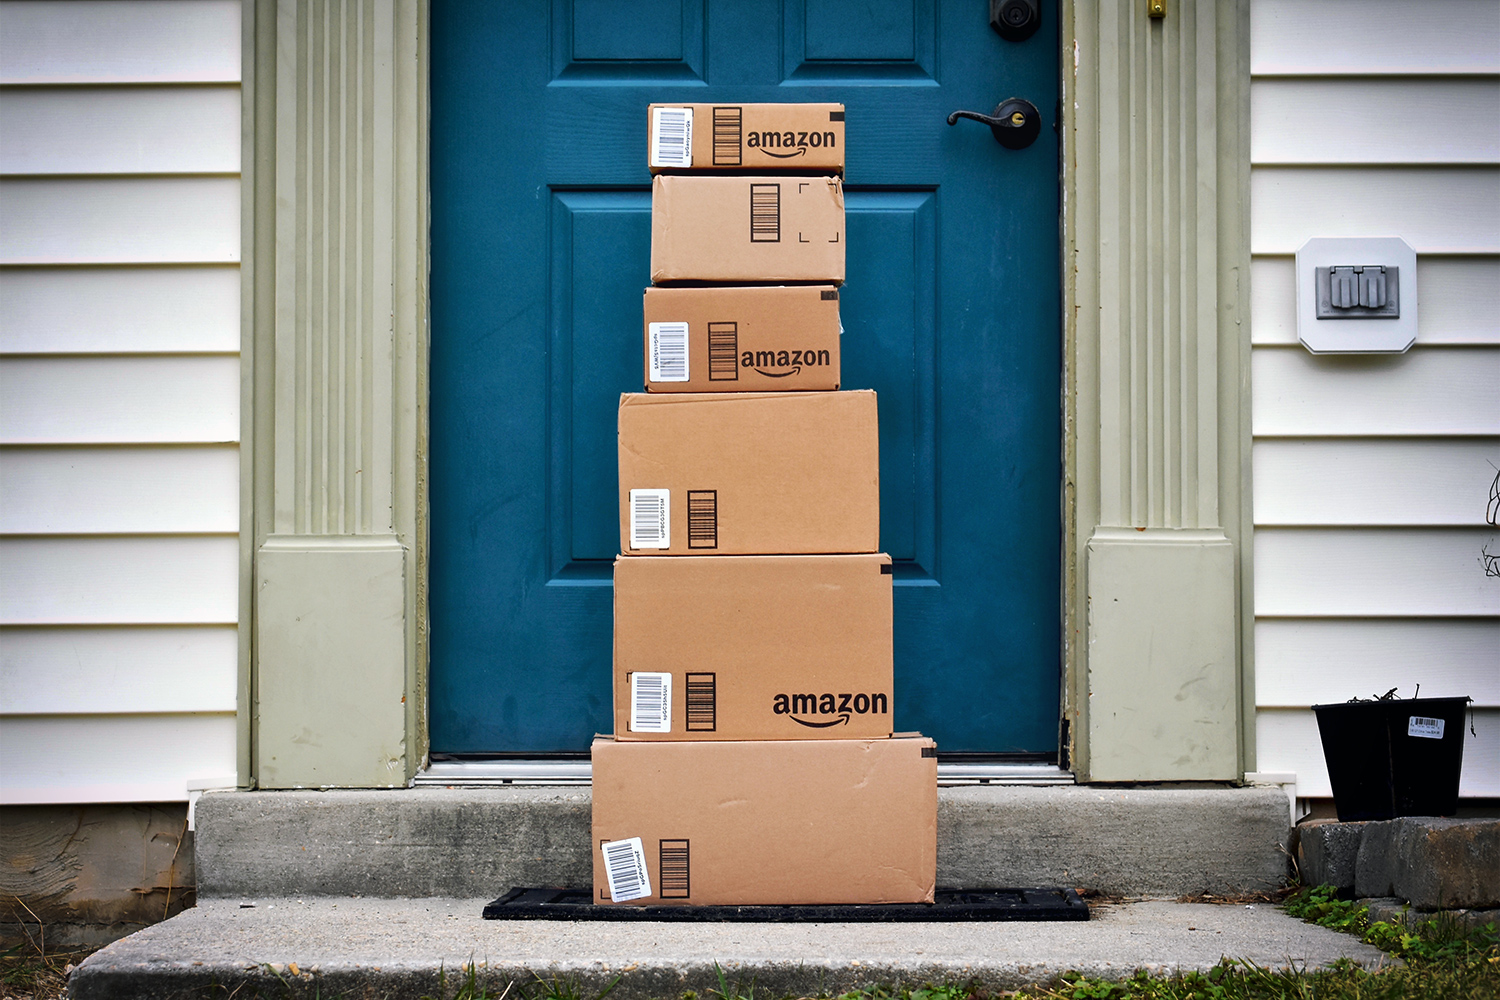 Amazon is photographing deliveries to show where they've been left